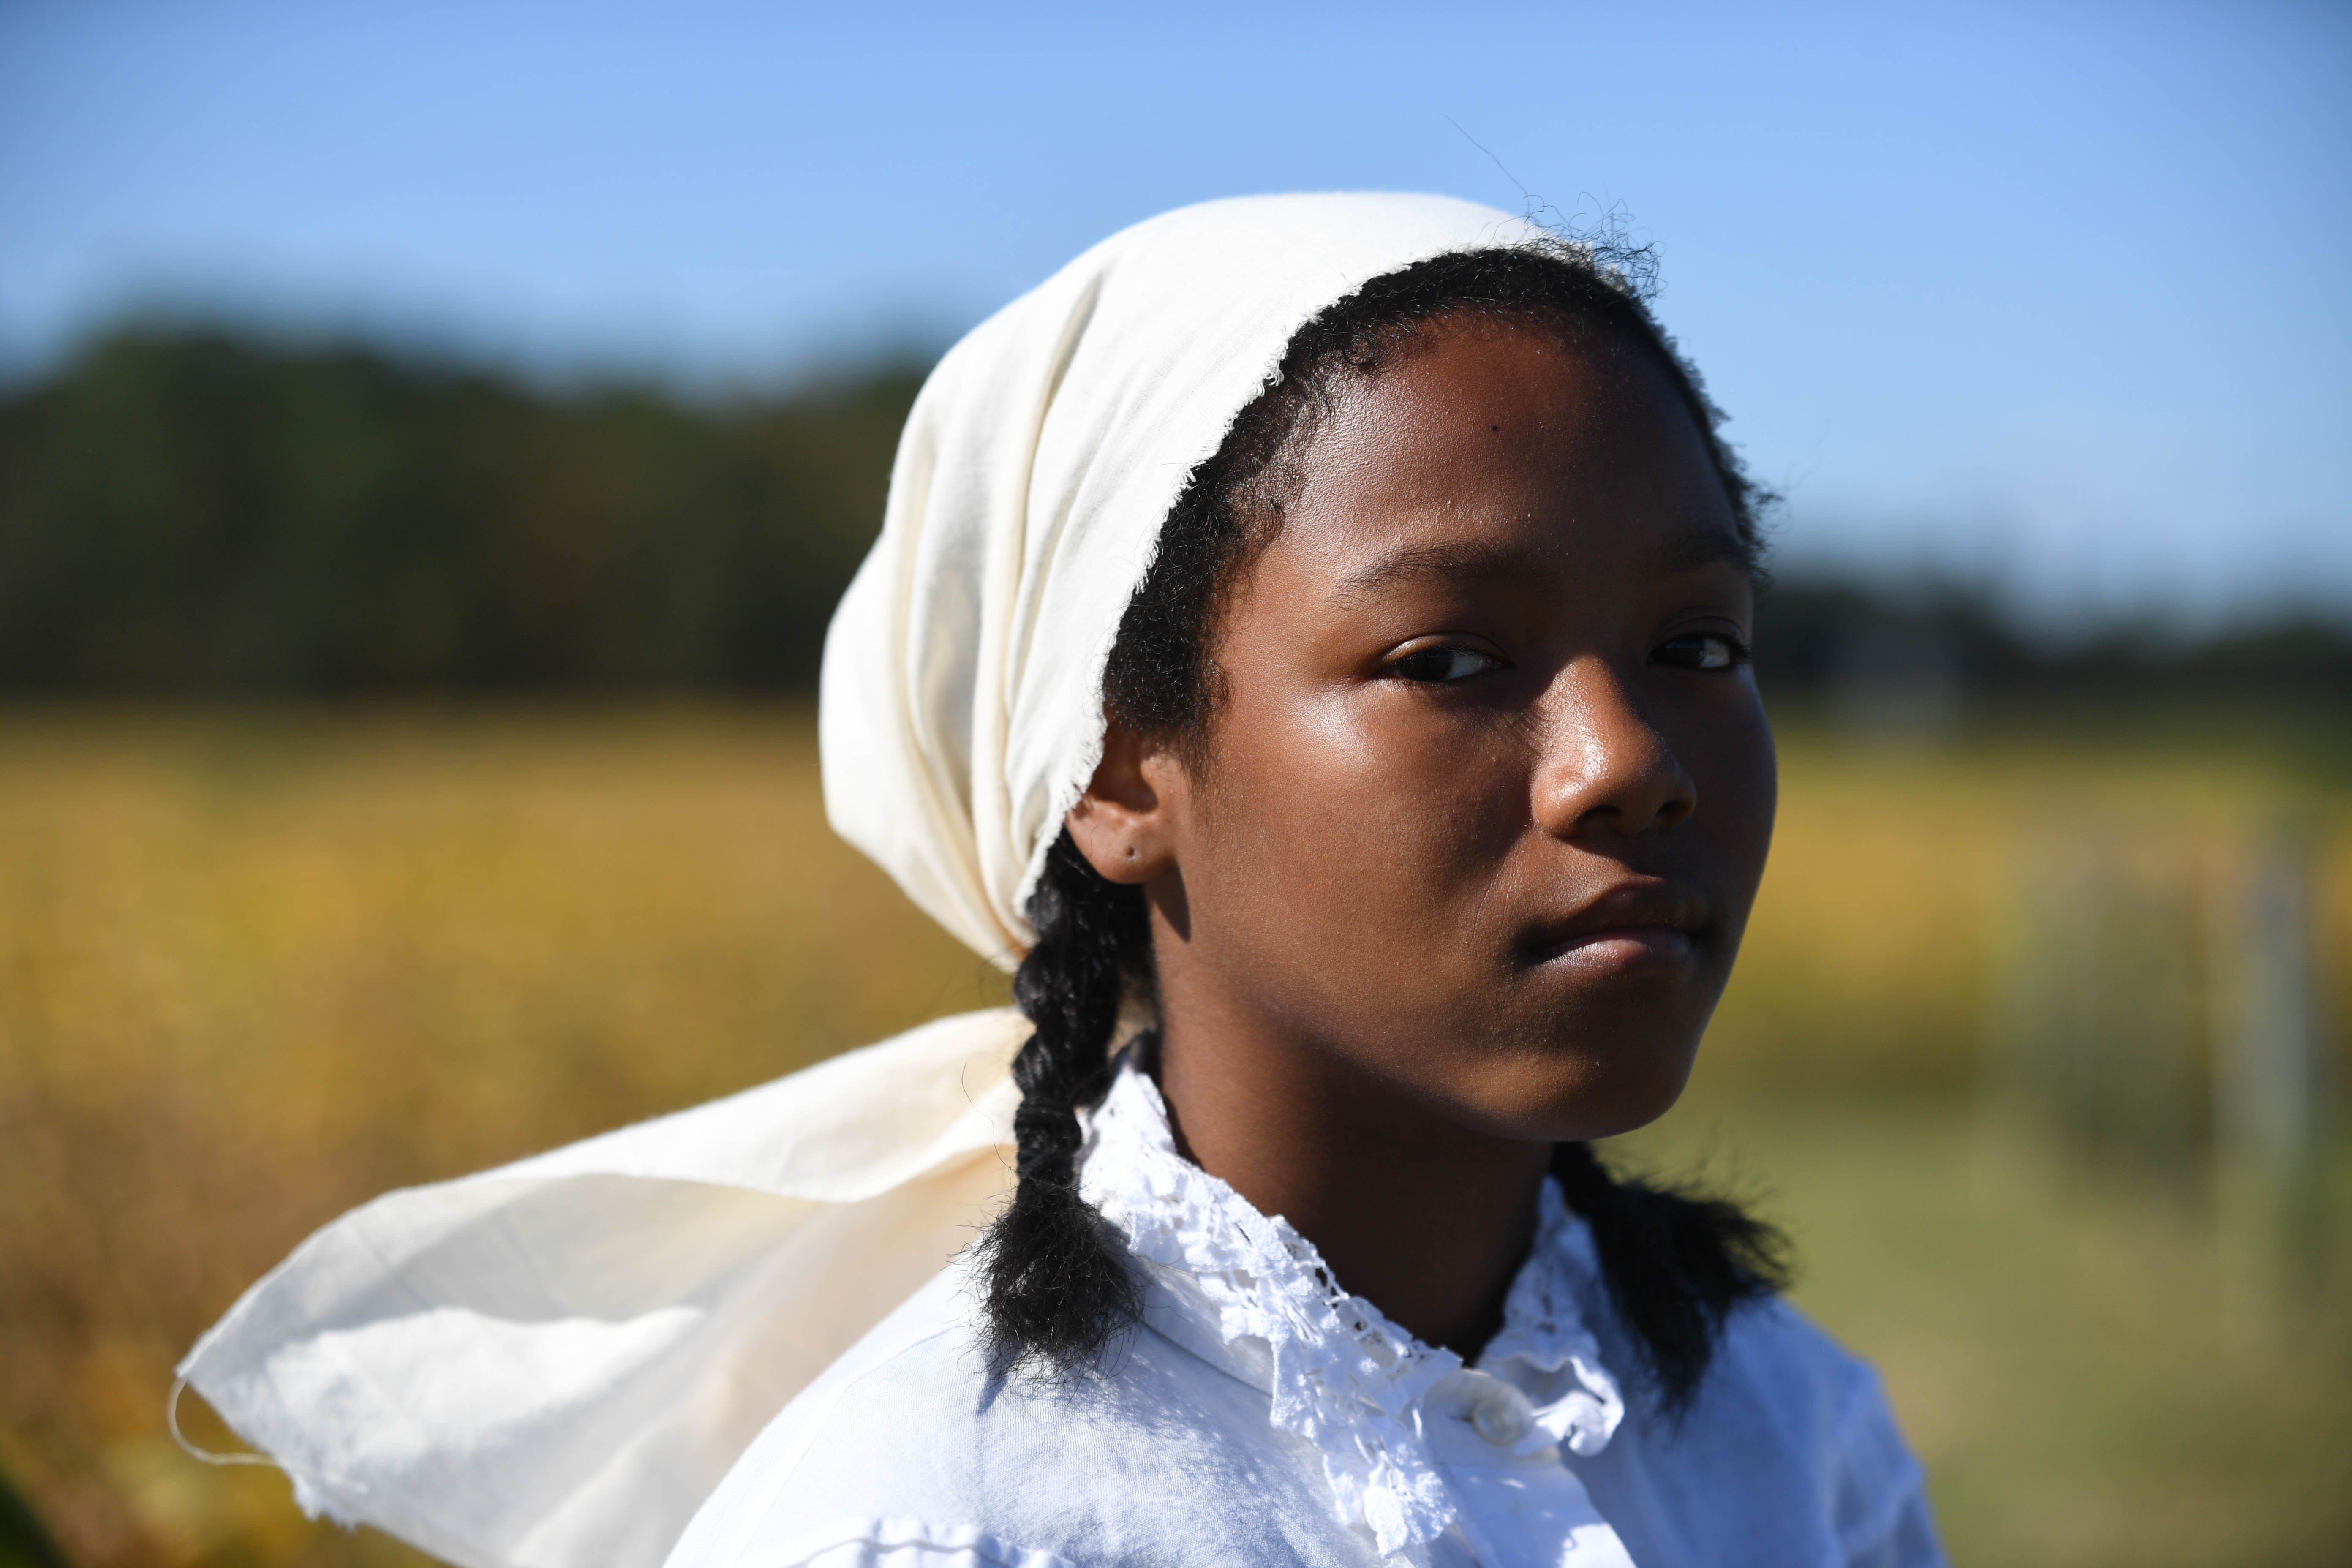 Harriet Tubman, according to Clara Smalls, an emeritus history professor at Salisbury University, didn't know how to clean properly, got sick while working and fell asleep at random times. Her overseers beat her so violently, she had scars. Reenactor Sydney Rushing portrays Tubman.